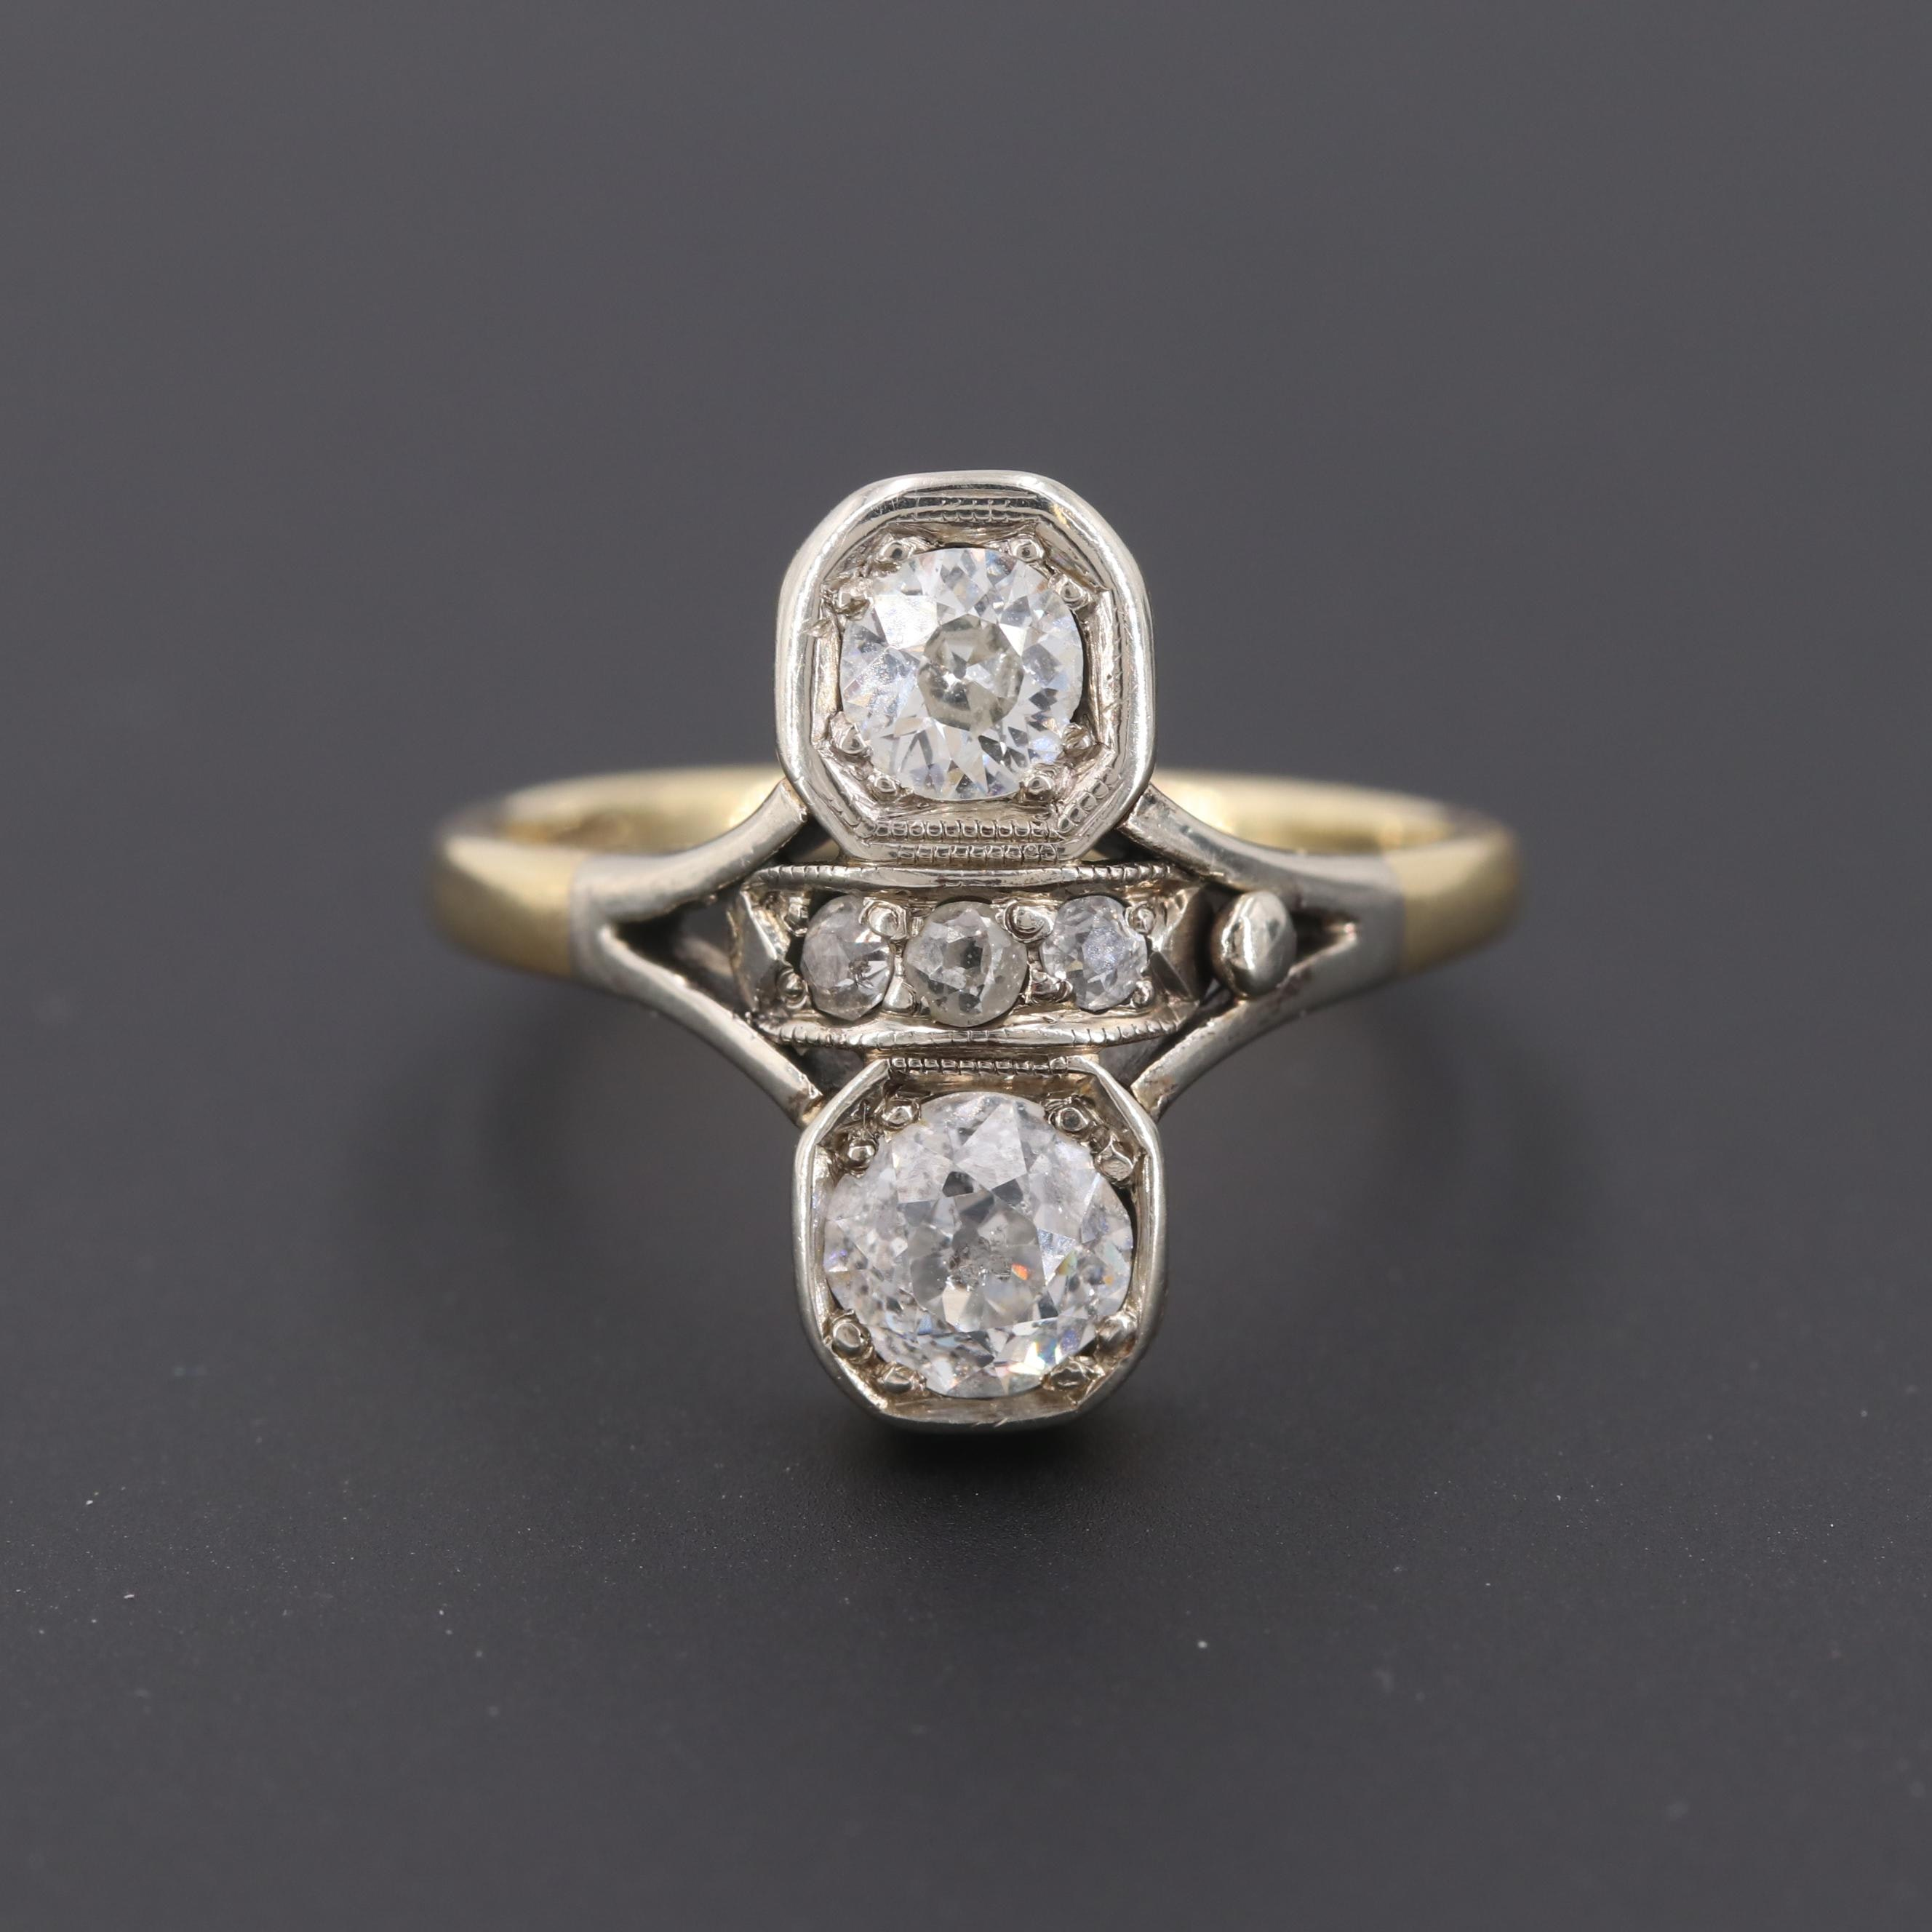 Art Deco 14K Yellow Gold 1.09 CTW Diamond Ring